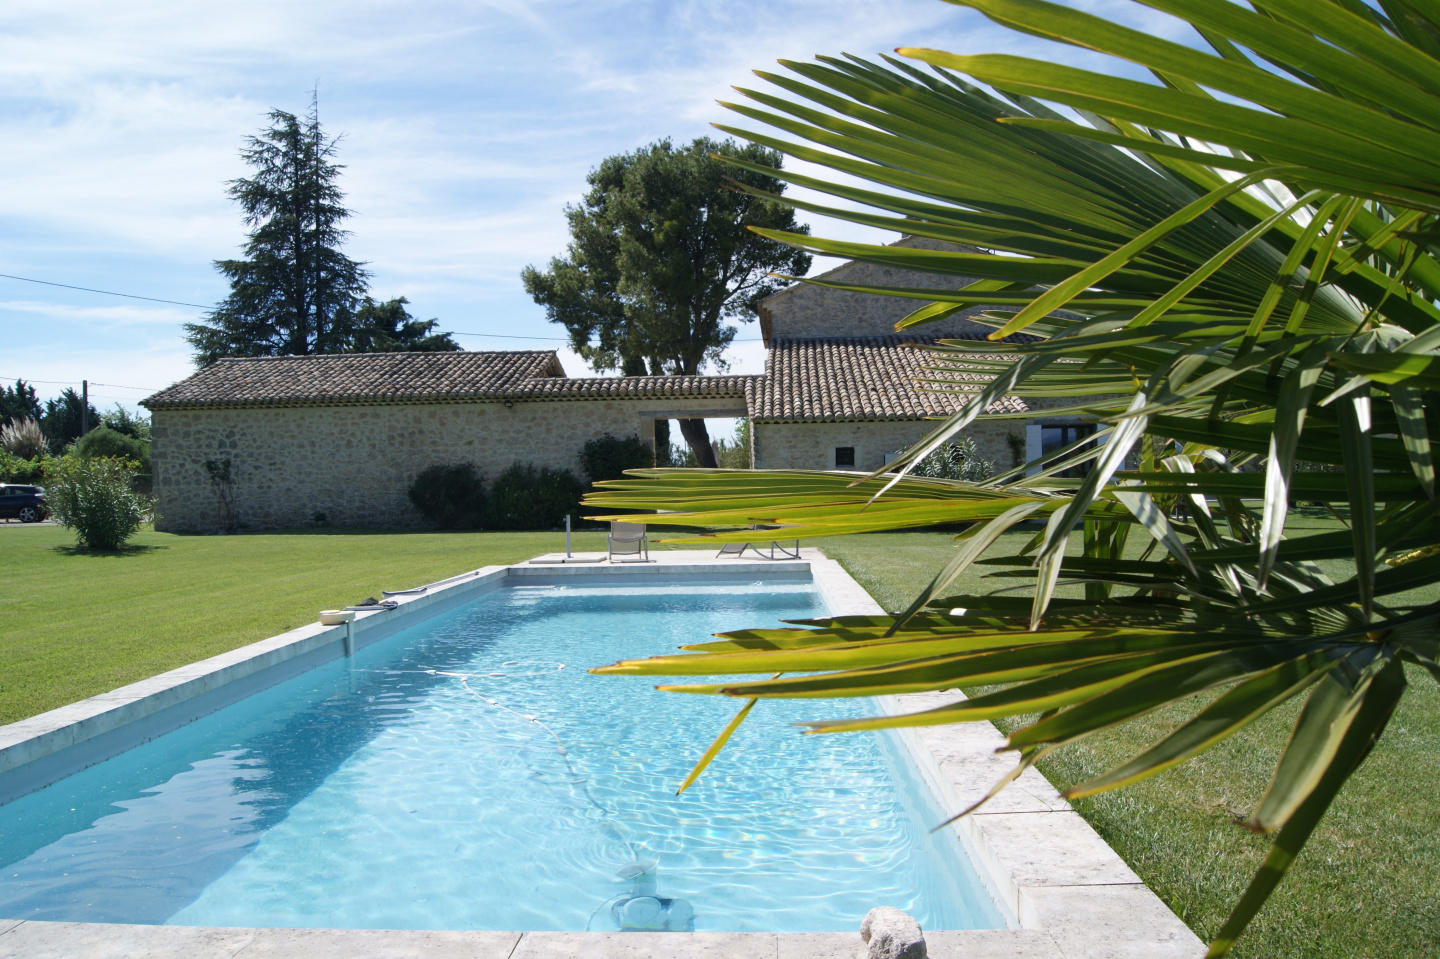 Self catering holiday rental Luberon Monts Vauc... Slide-1